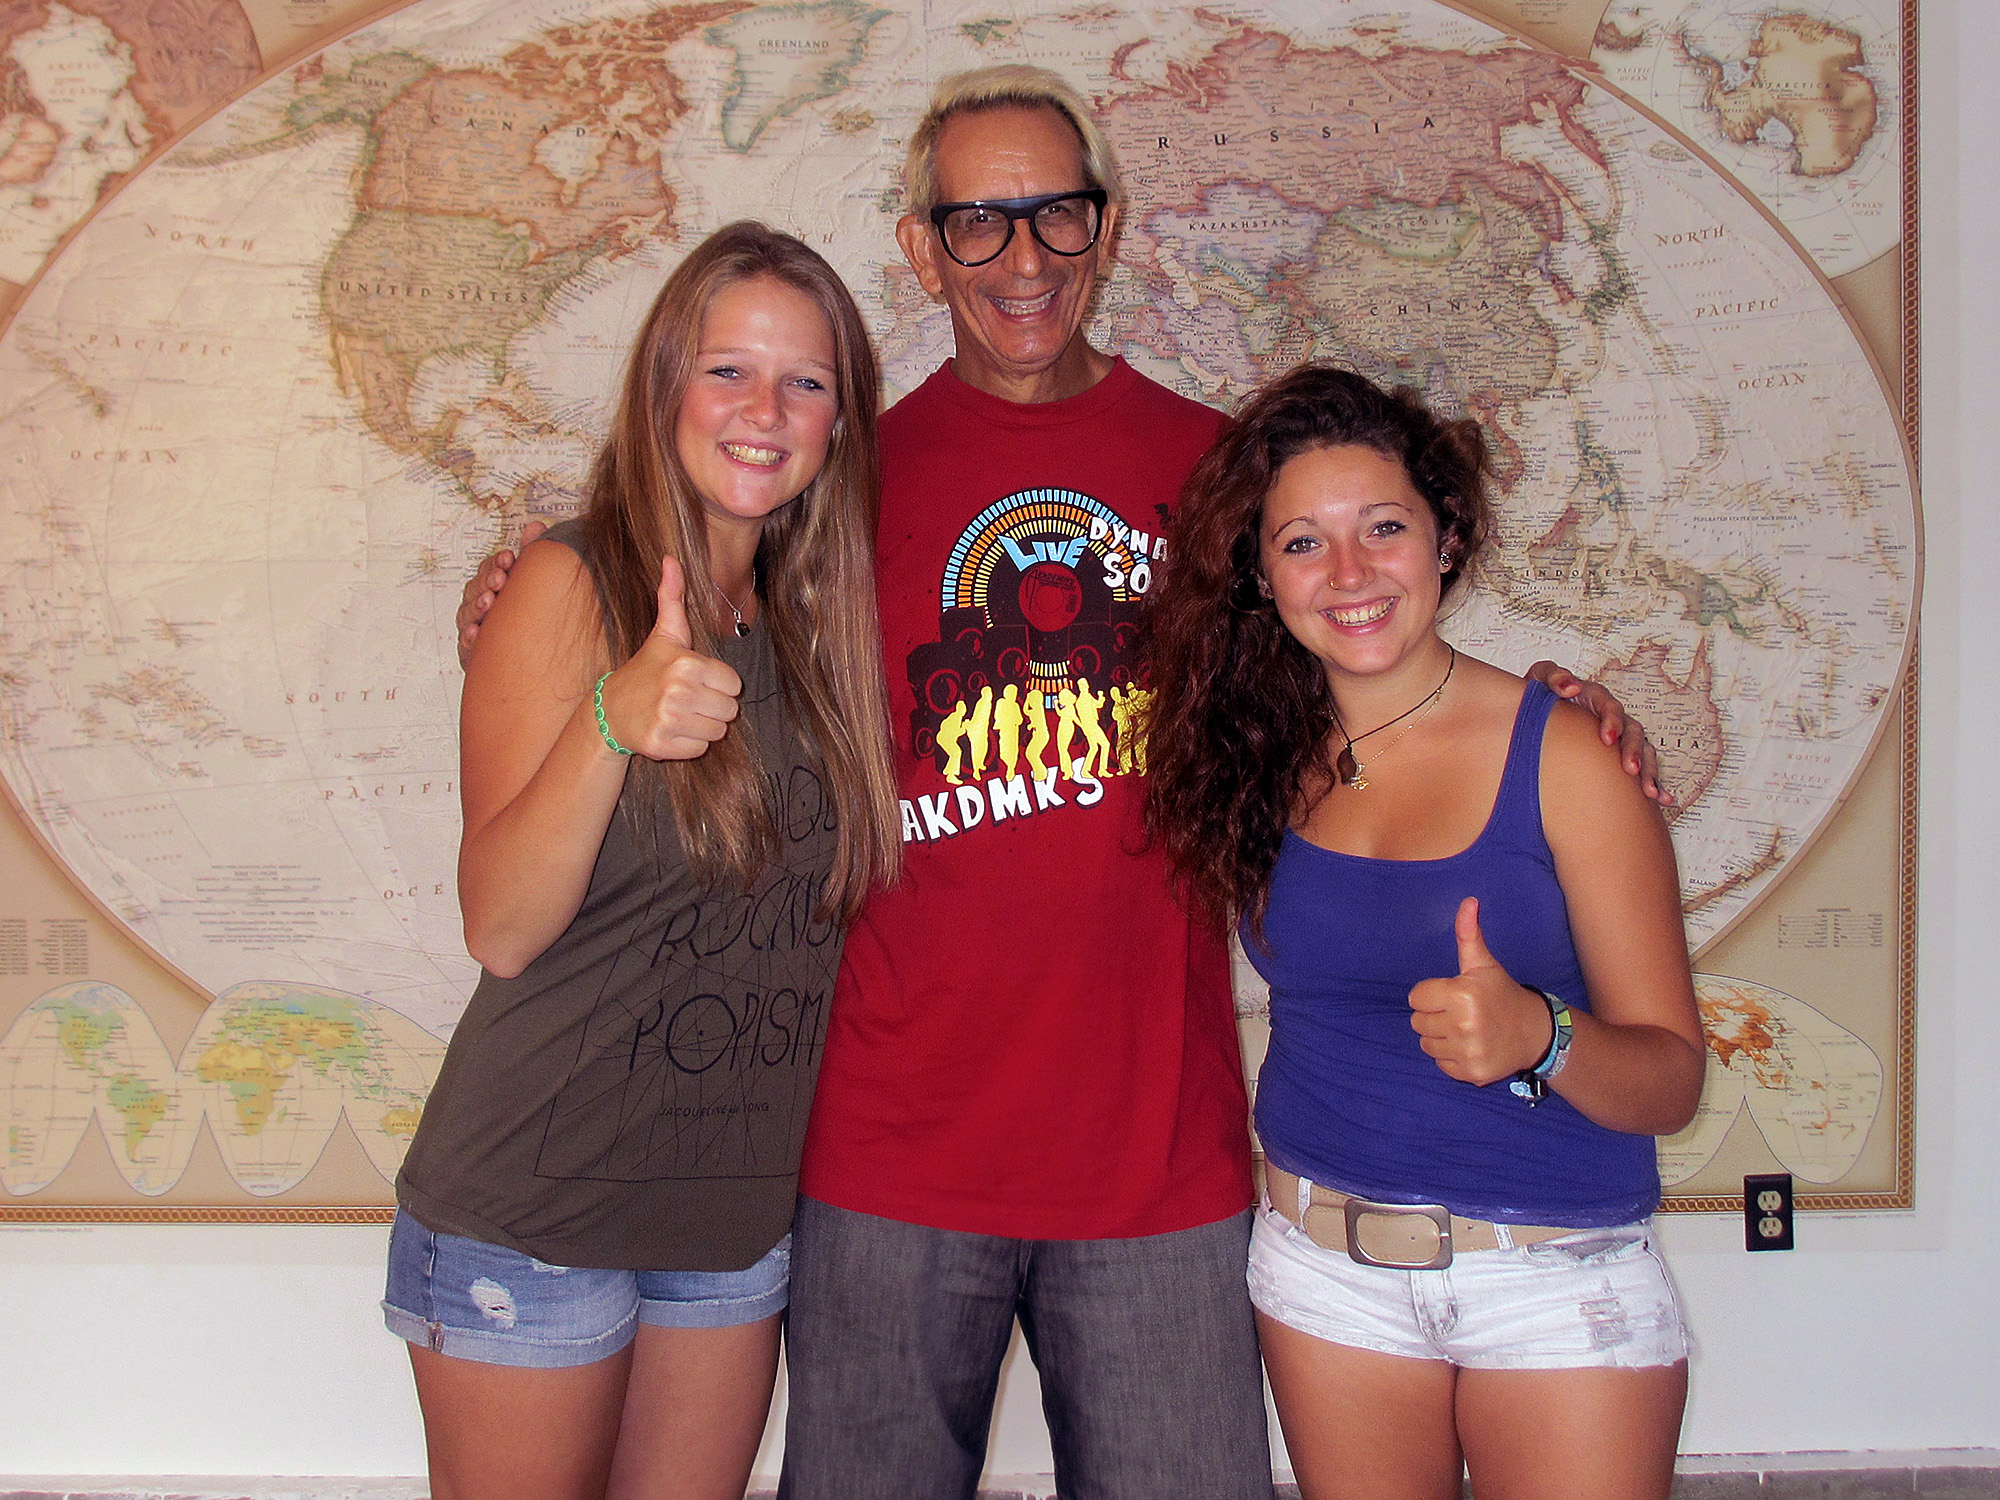 Stefanie, Glenn & Zeinab posing in front of a large world map